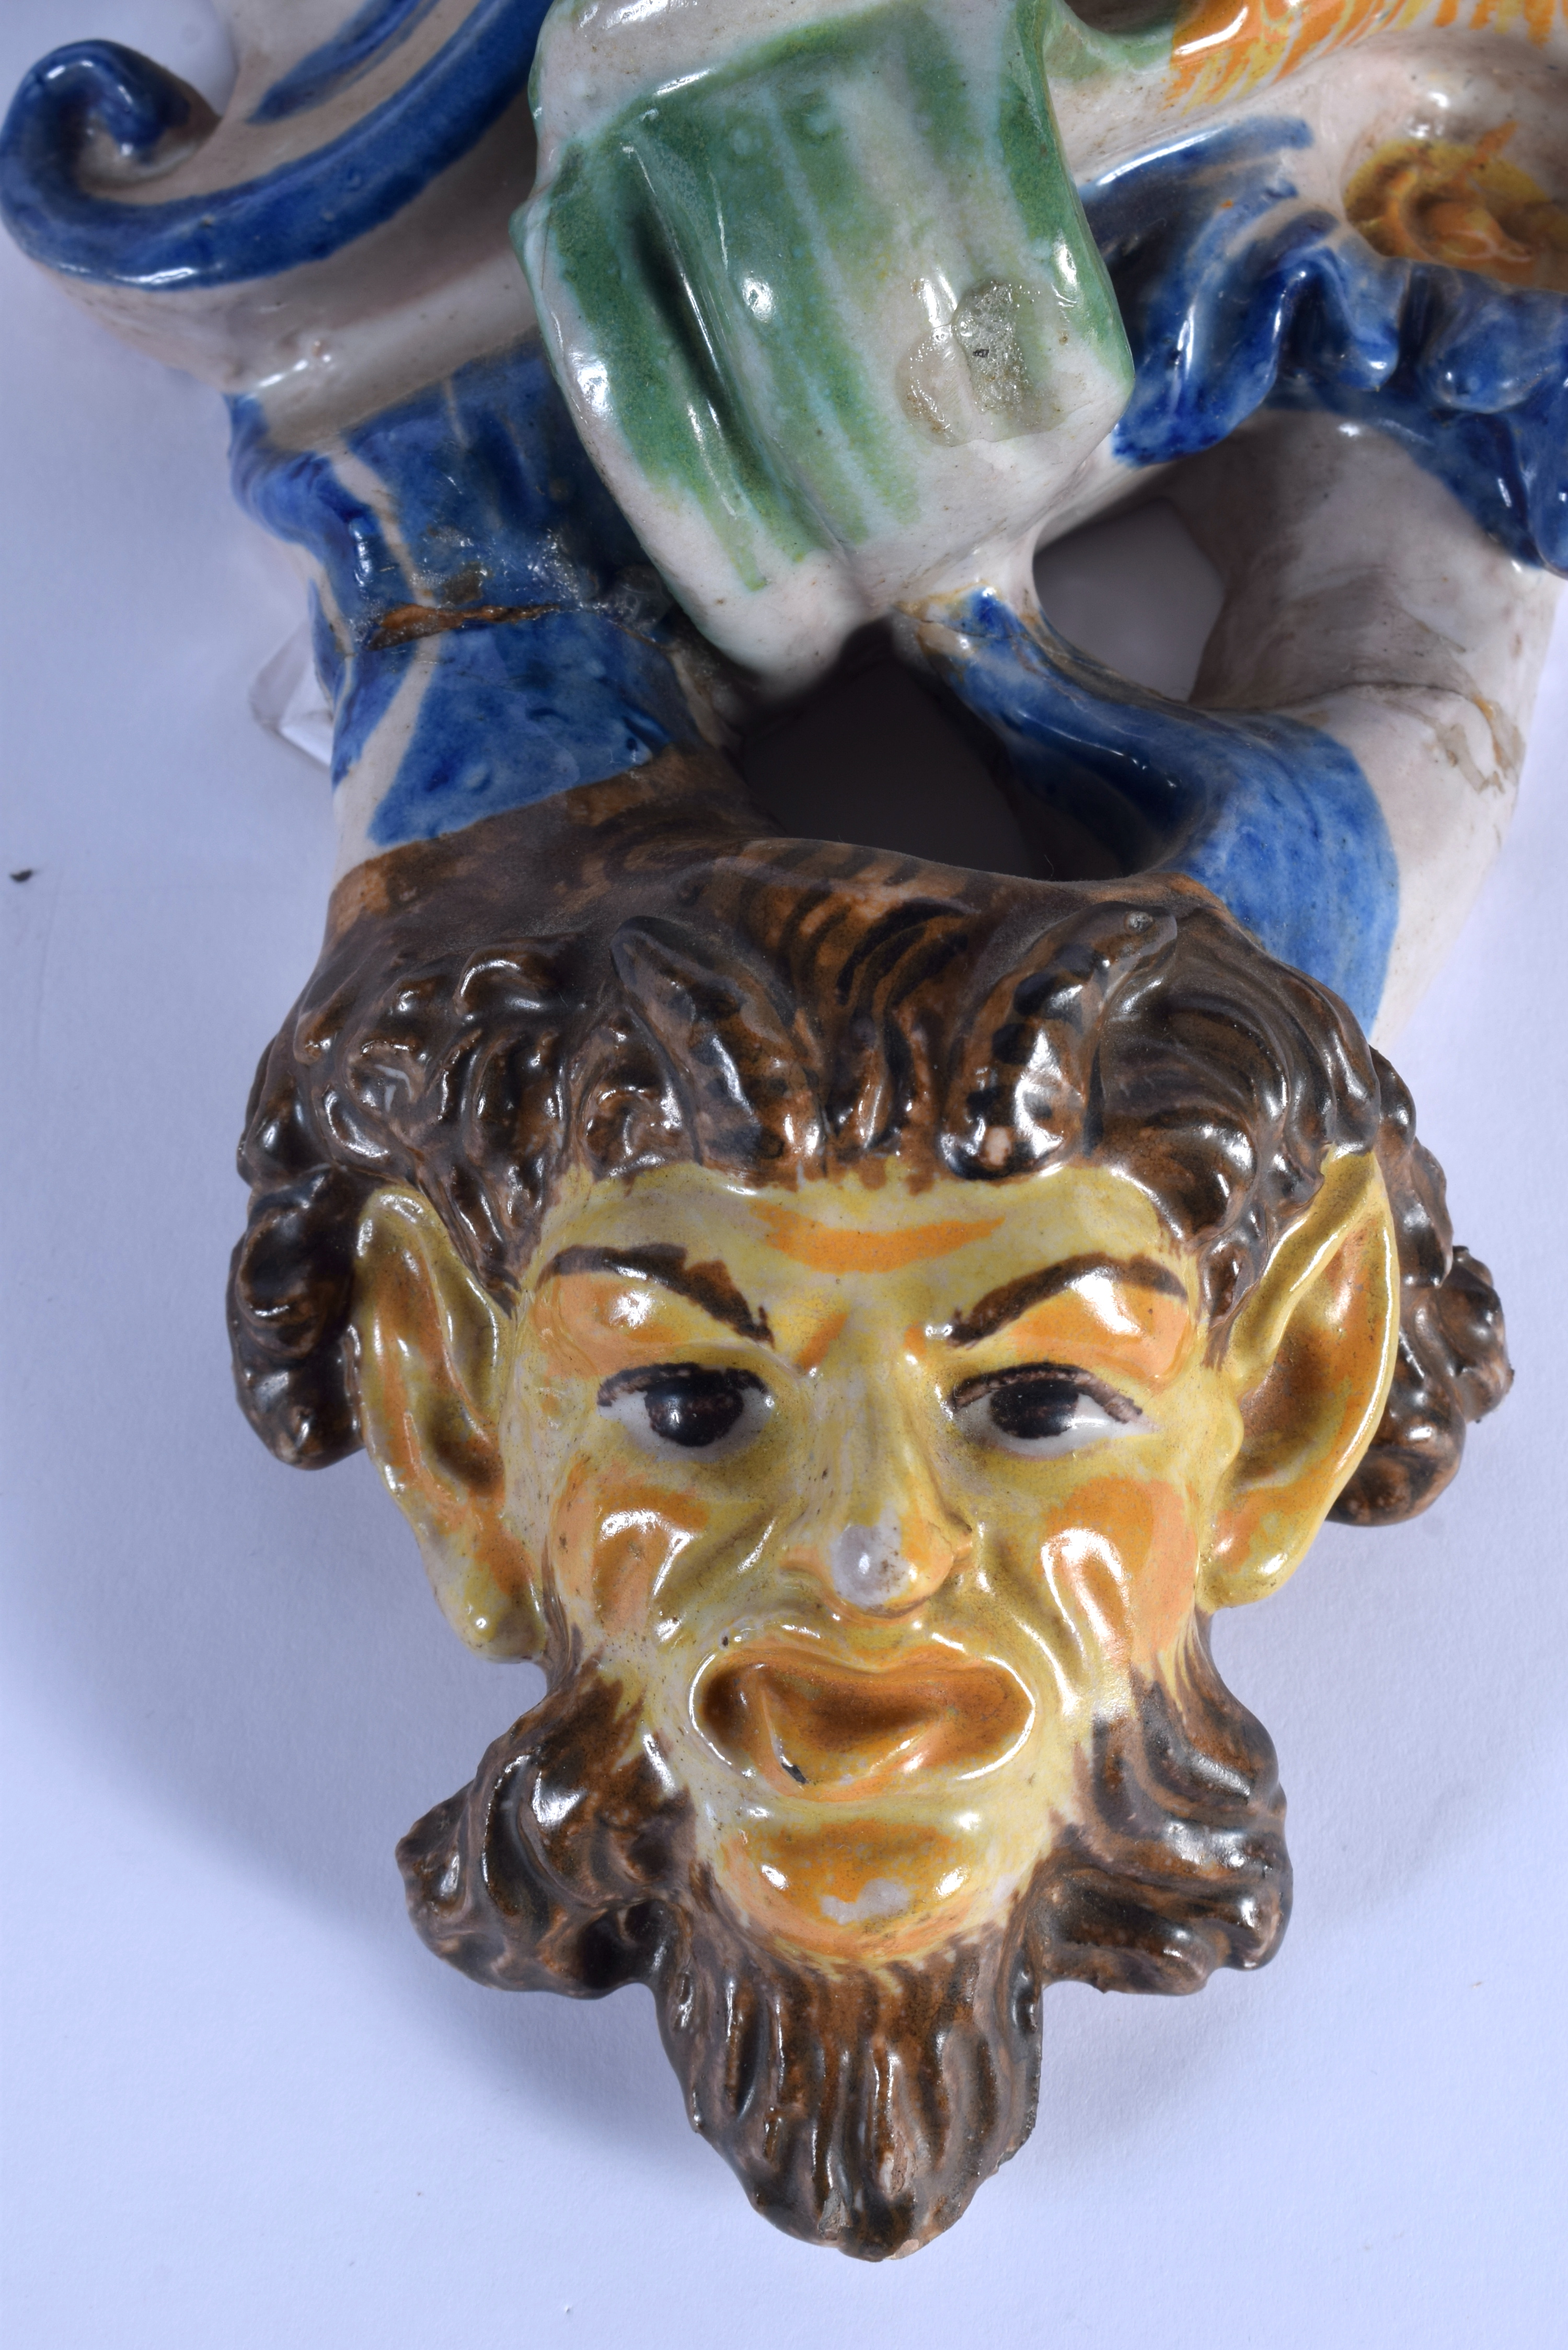 A LARGE PAIR OF 19TH CENTURY ITALIAN MAJOLICA POTTERY WALL BRACKETS formed with figures over mask he - Image 4 of 7